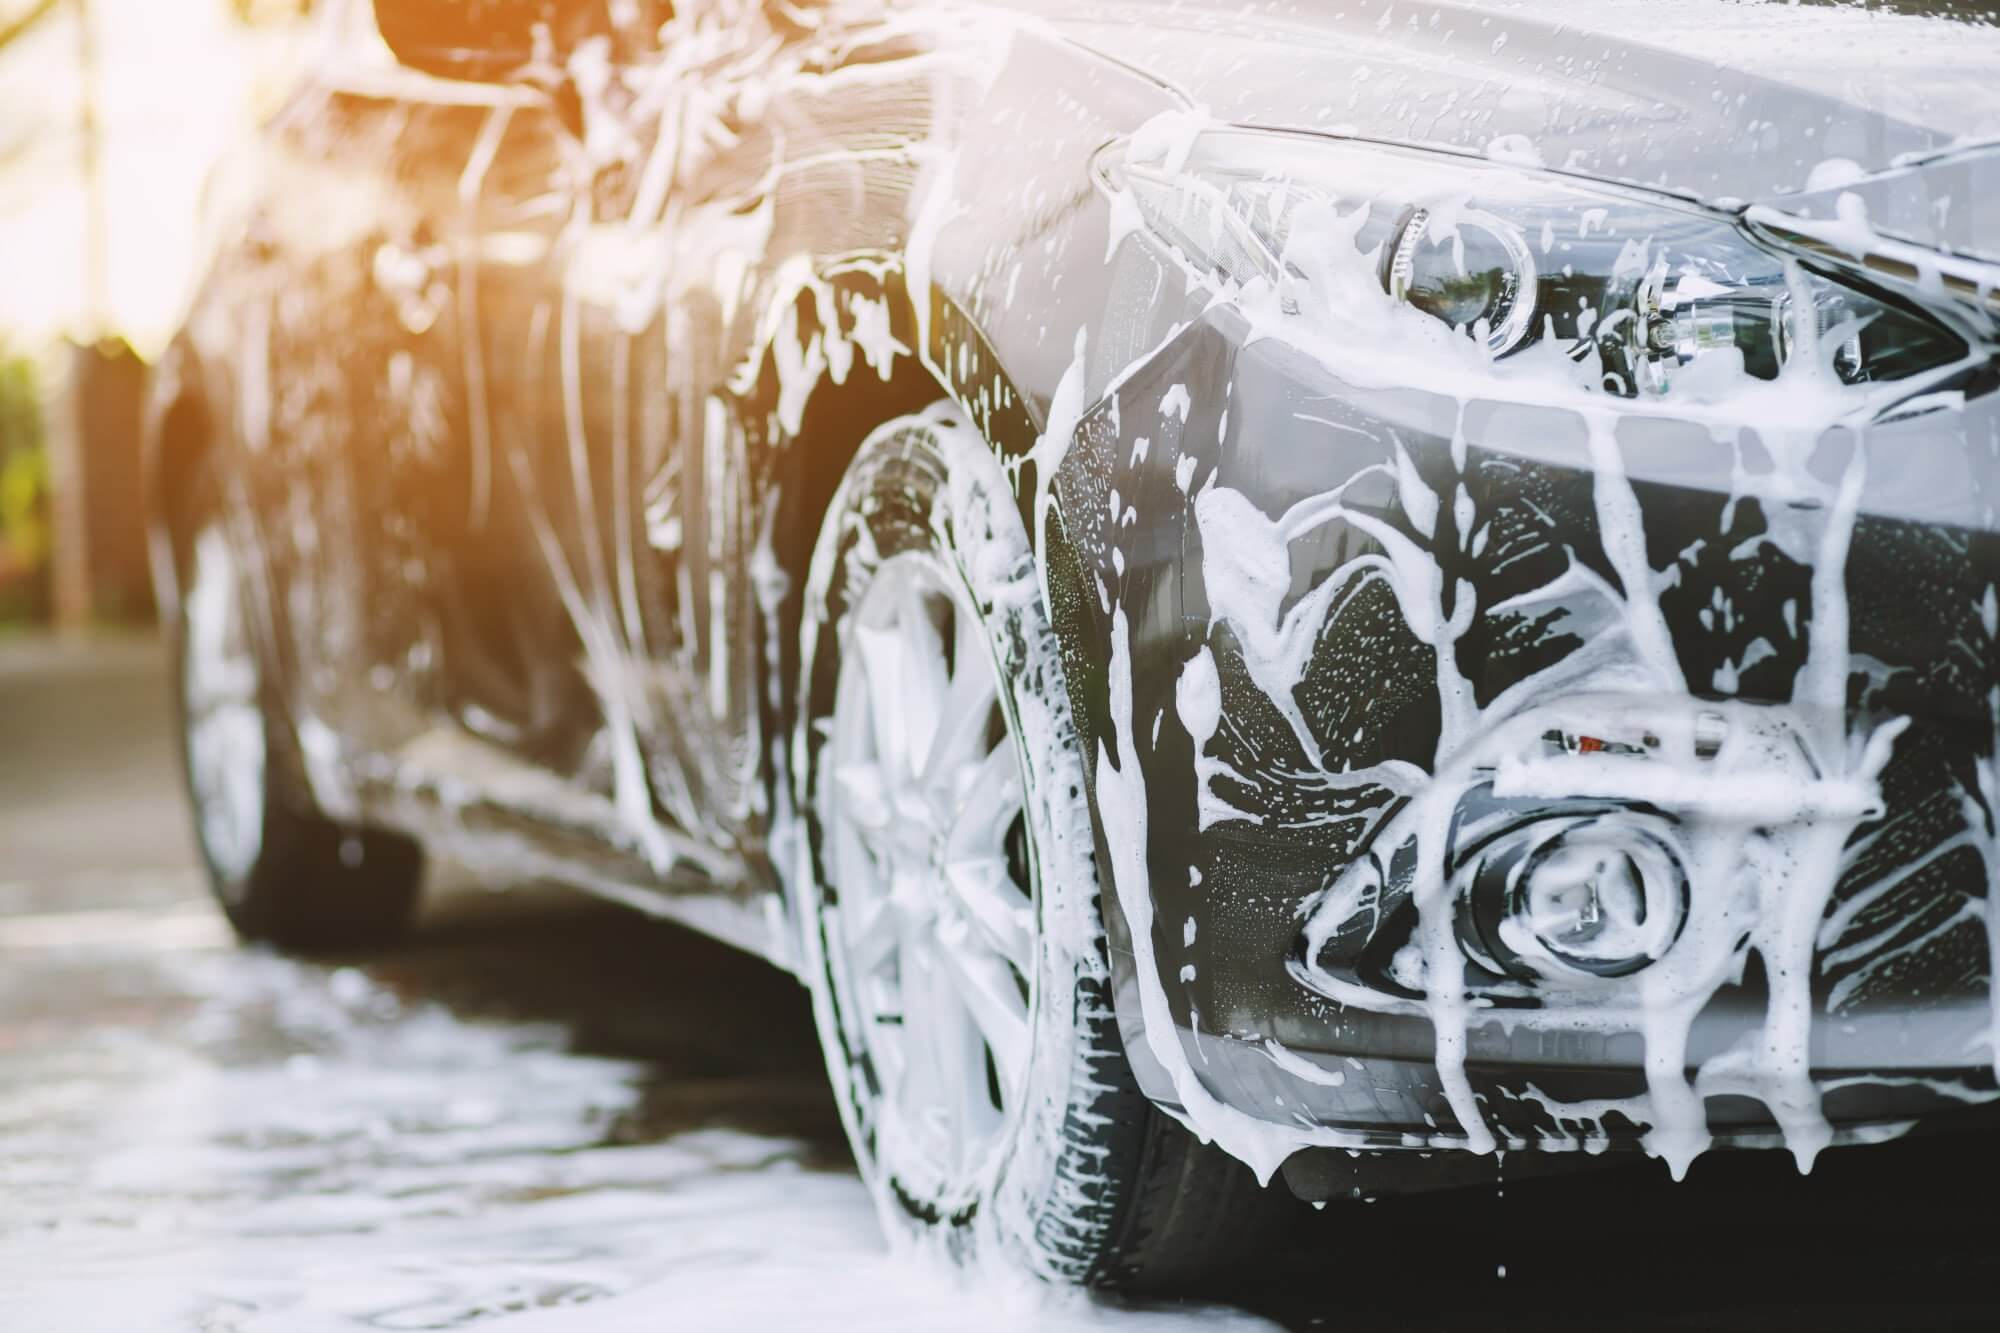 How Often Should You Wash Your Car? A Guide for Florida Residents